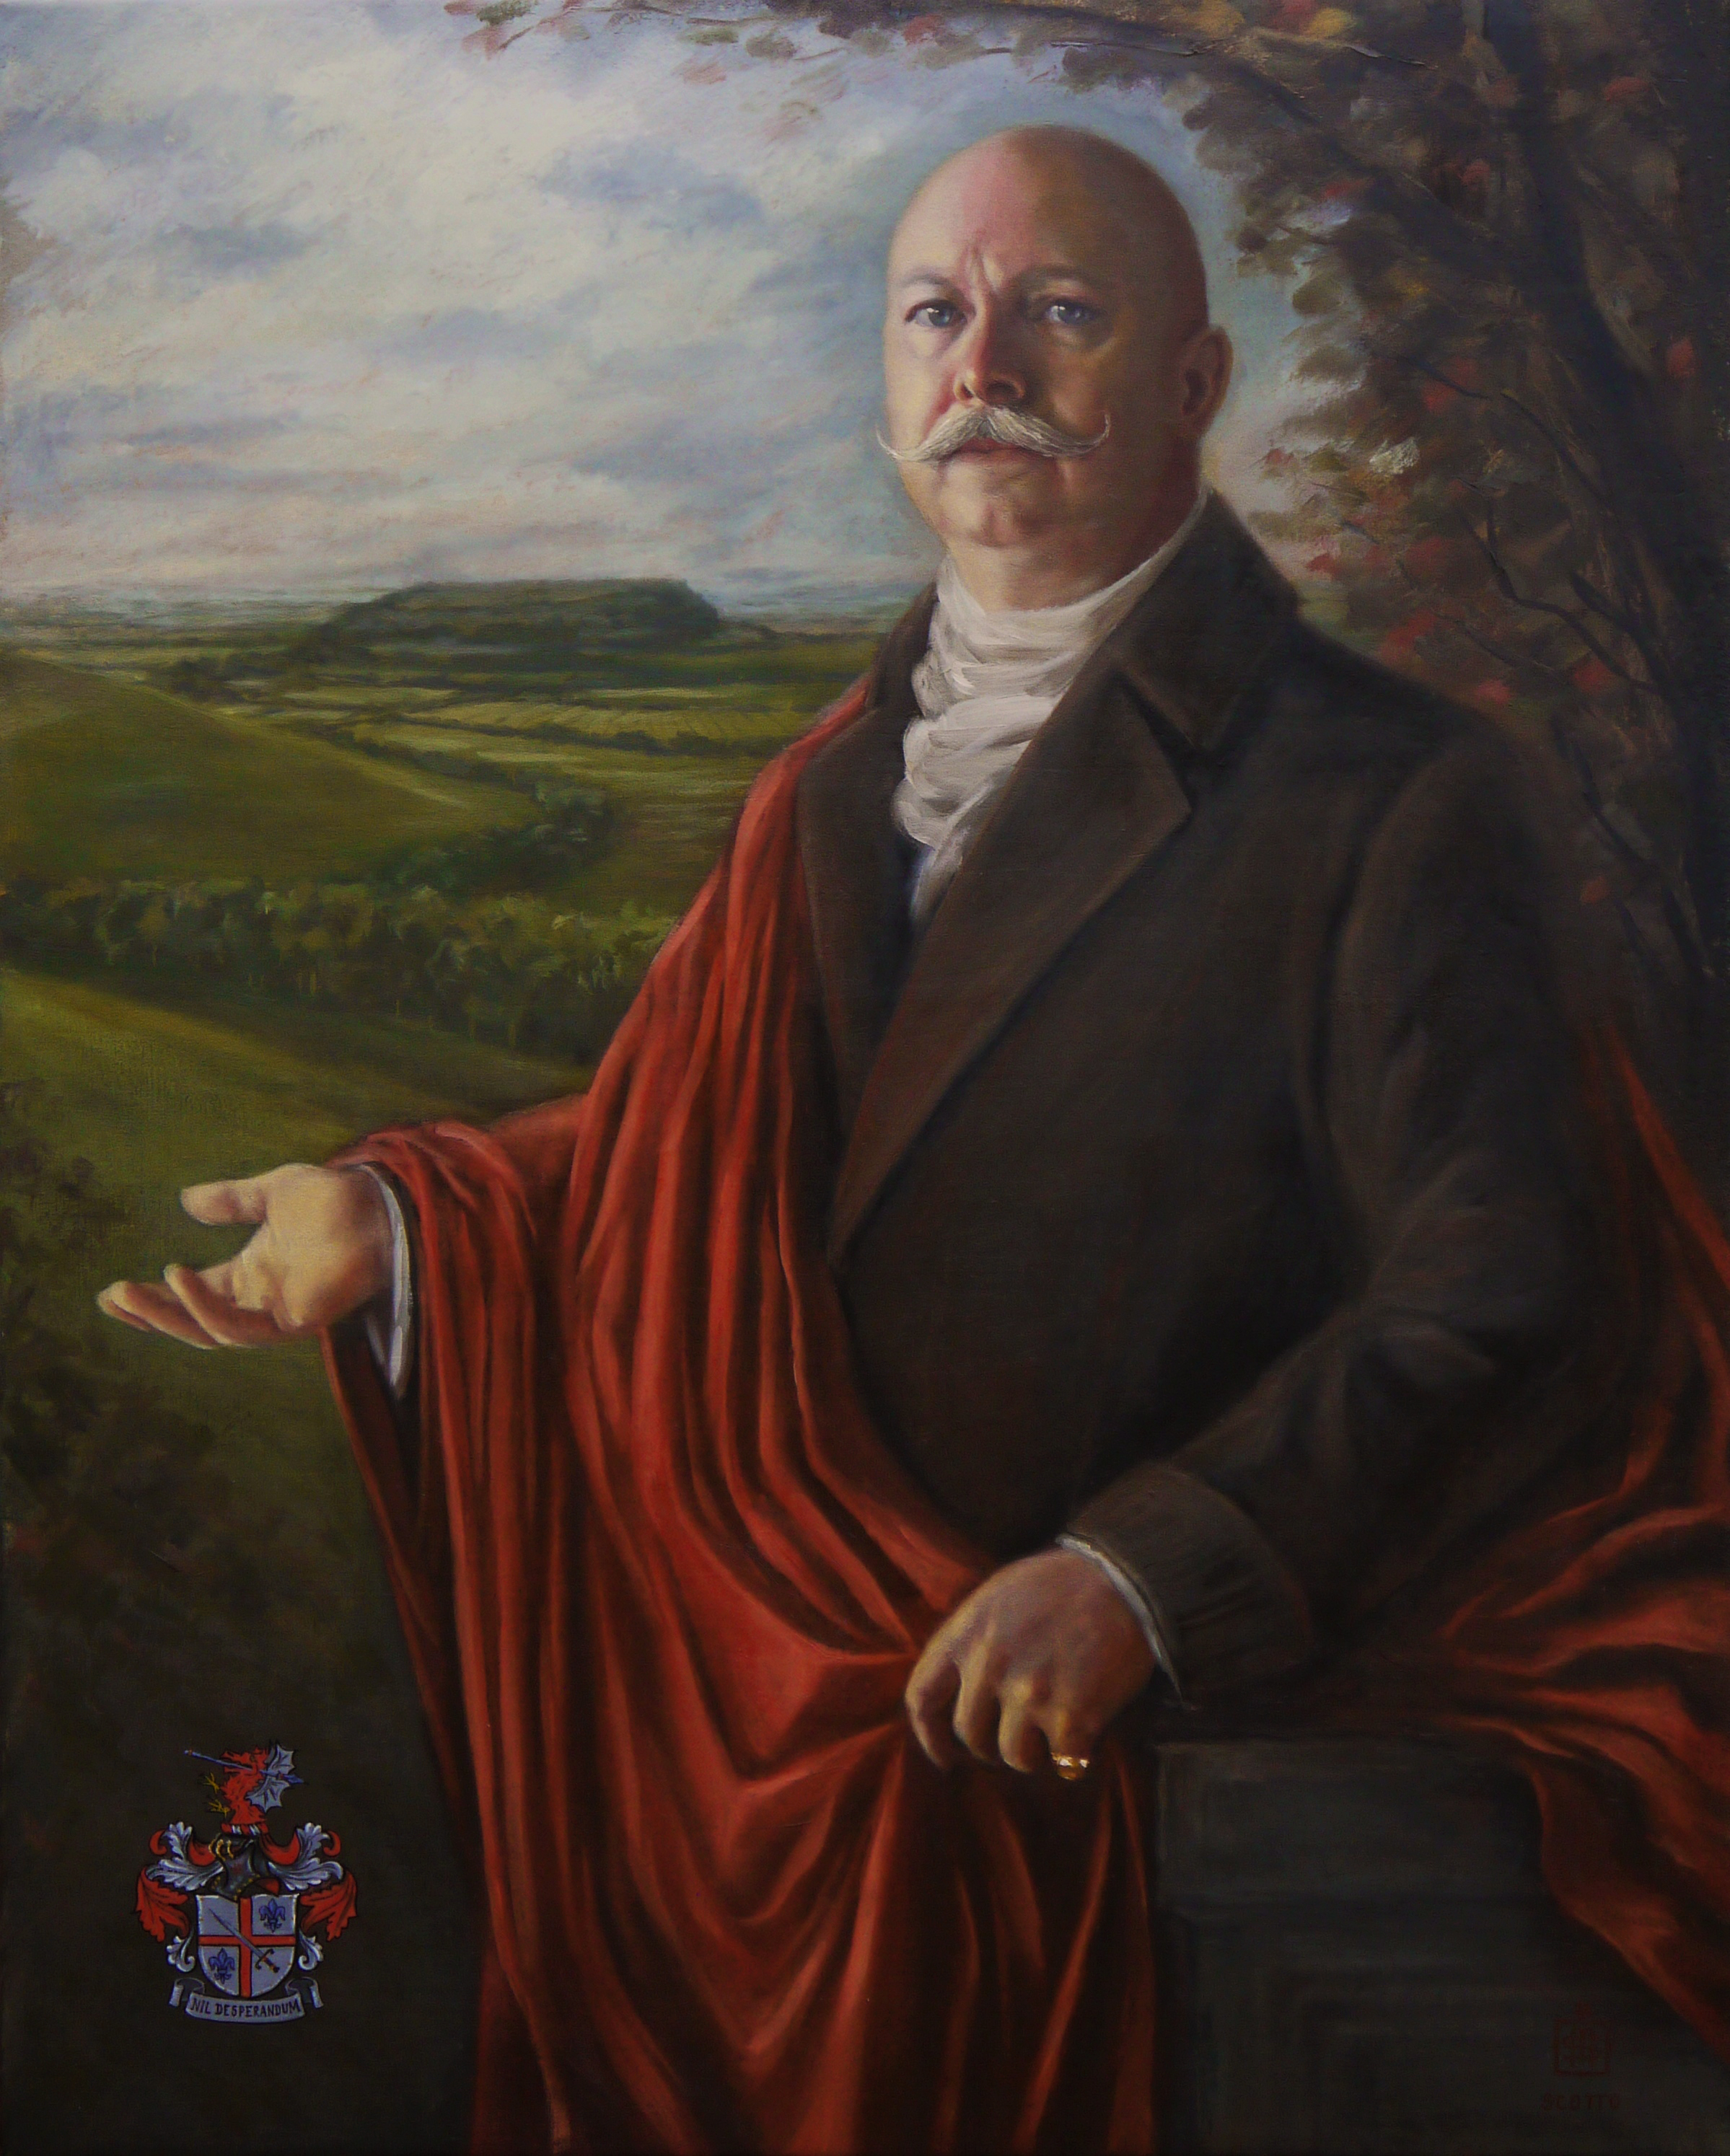 Completed painting. The Baron extends his right hand in a welcoming gesture. The background shows a view of South Cadbury. The mound which breaks the horizon line is where Cadbury Castle once was, a site rich of archaeological interest as it is believed to be the seat of Camelot, where the legendary King Arthur had his court.